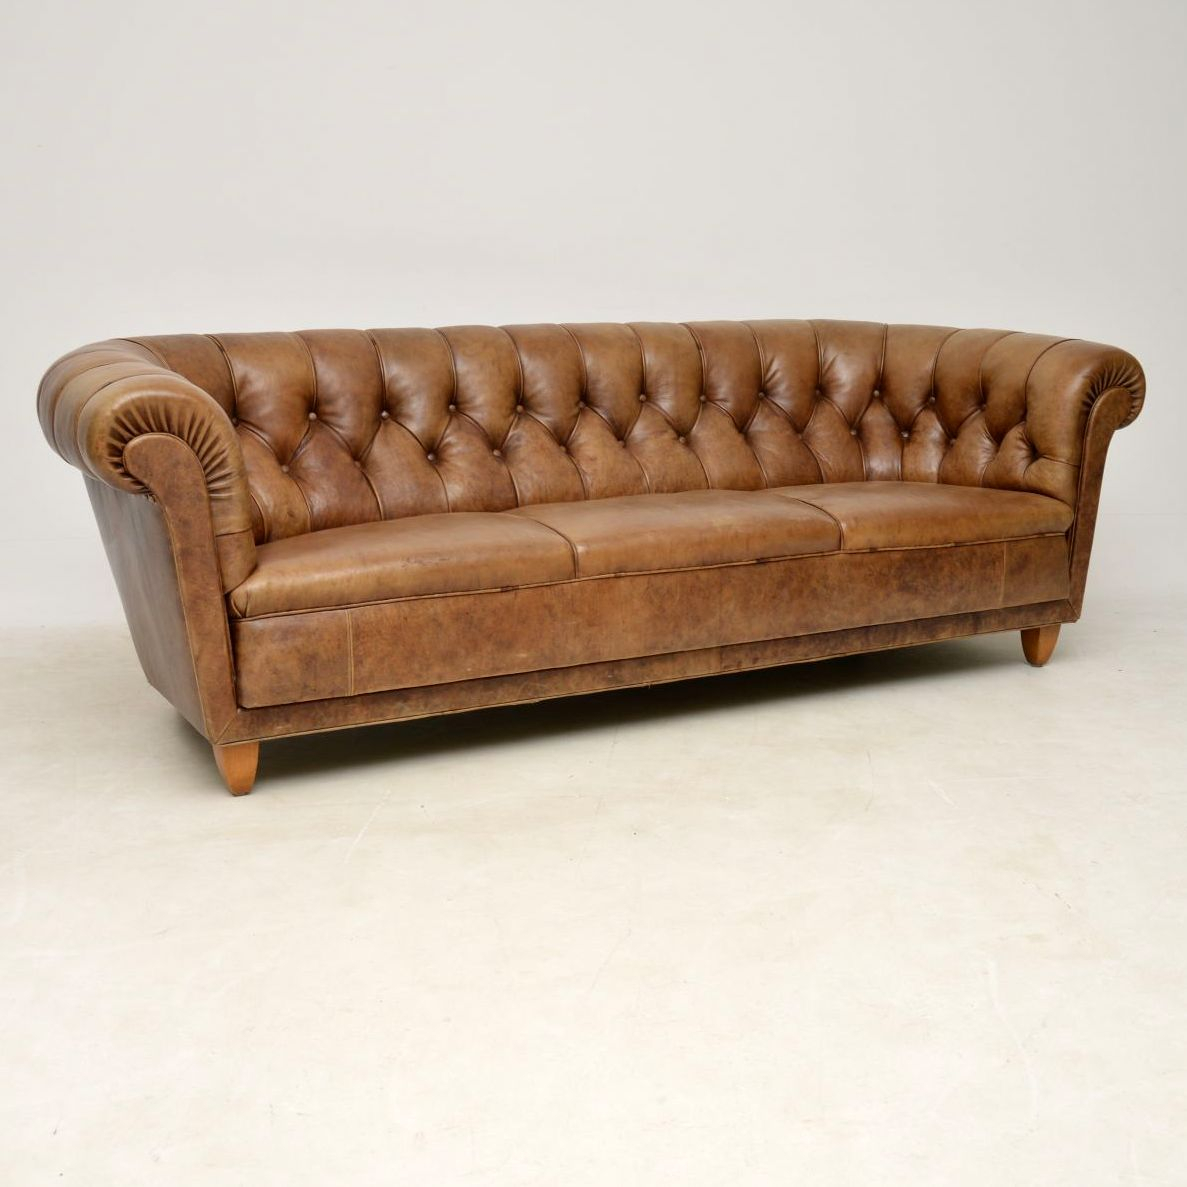 Antique Swedish Leather Chesterfield Sofa – Marylebone For Leather Chesterfield Sofas (View 2 of 15)